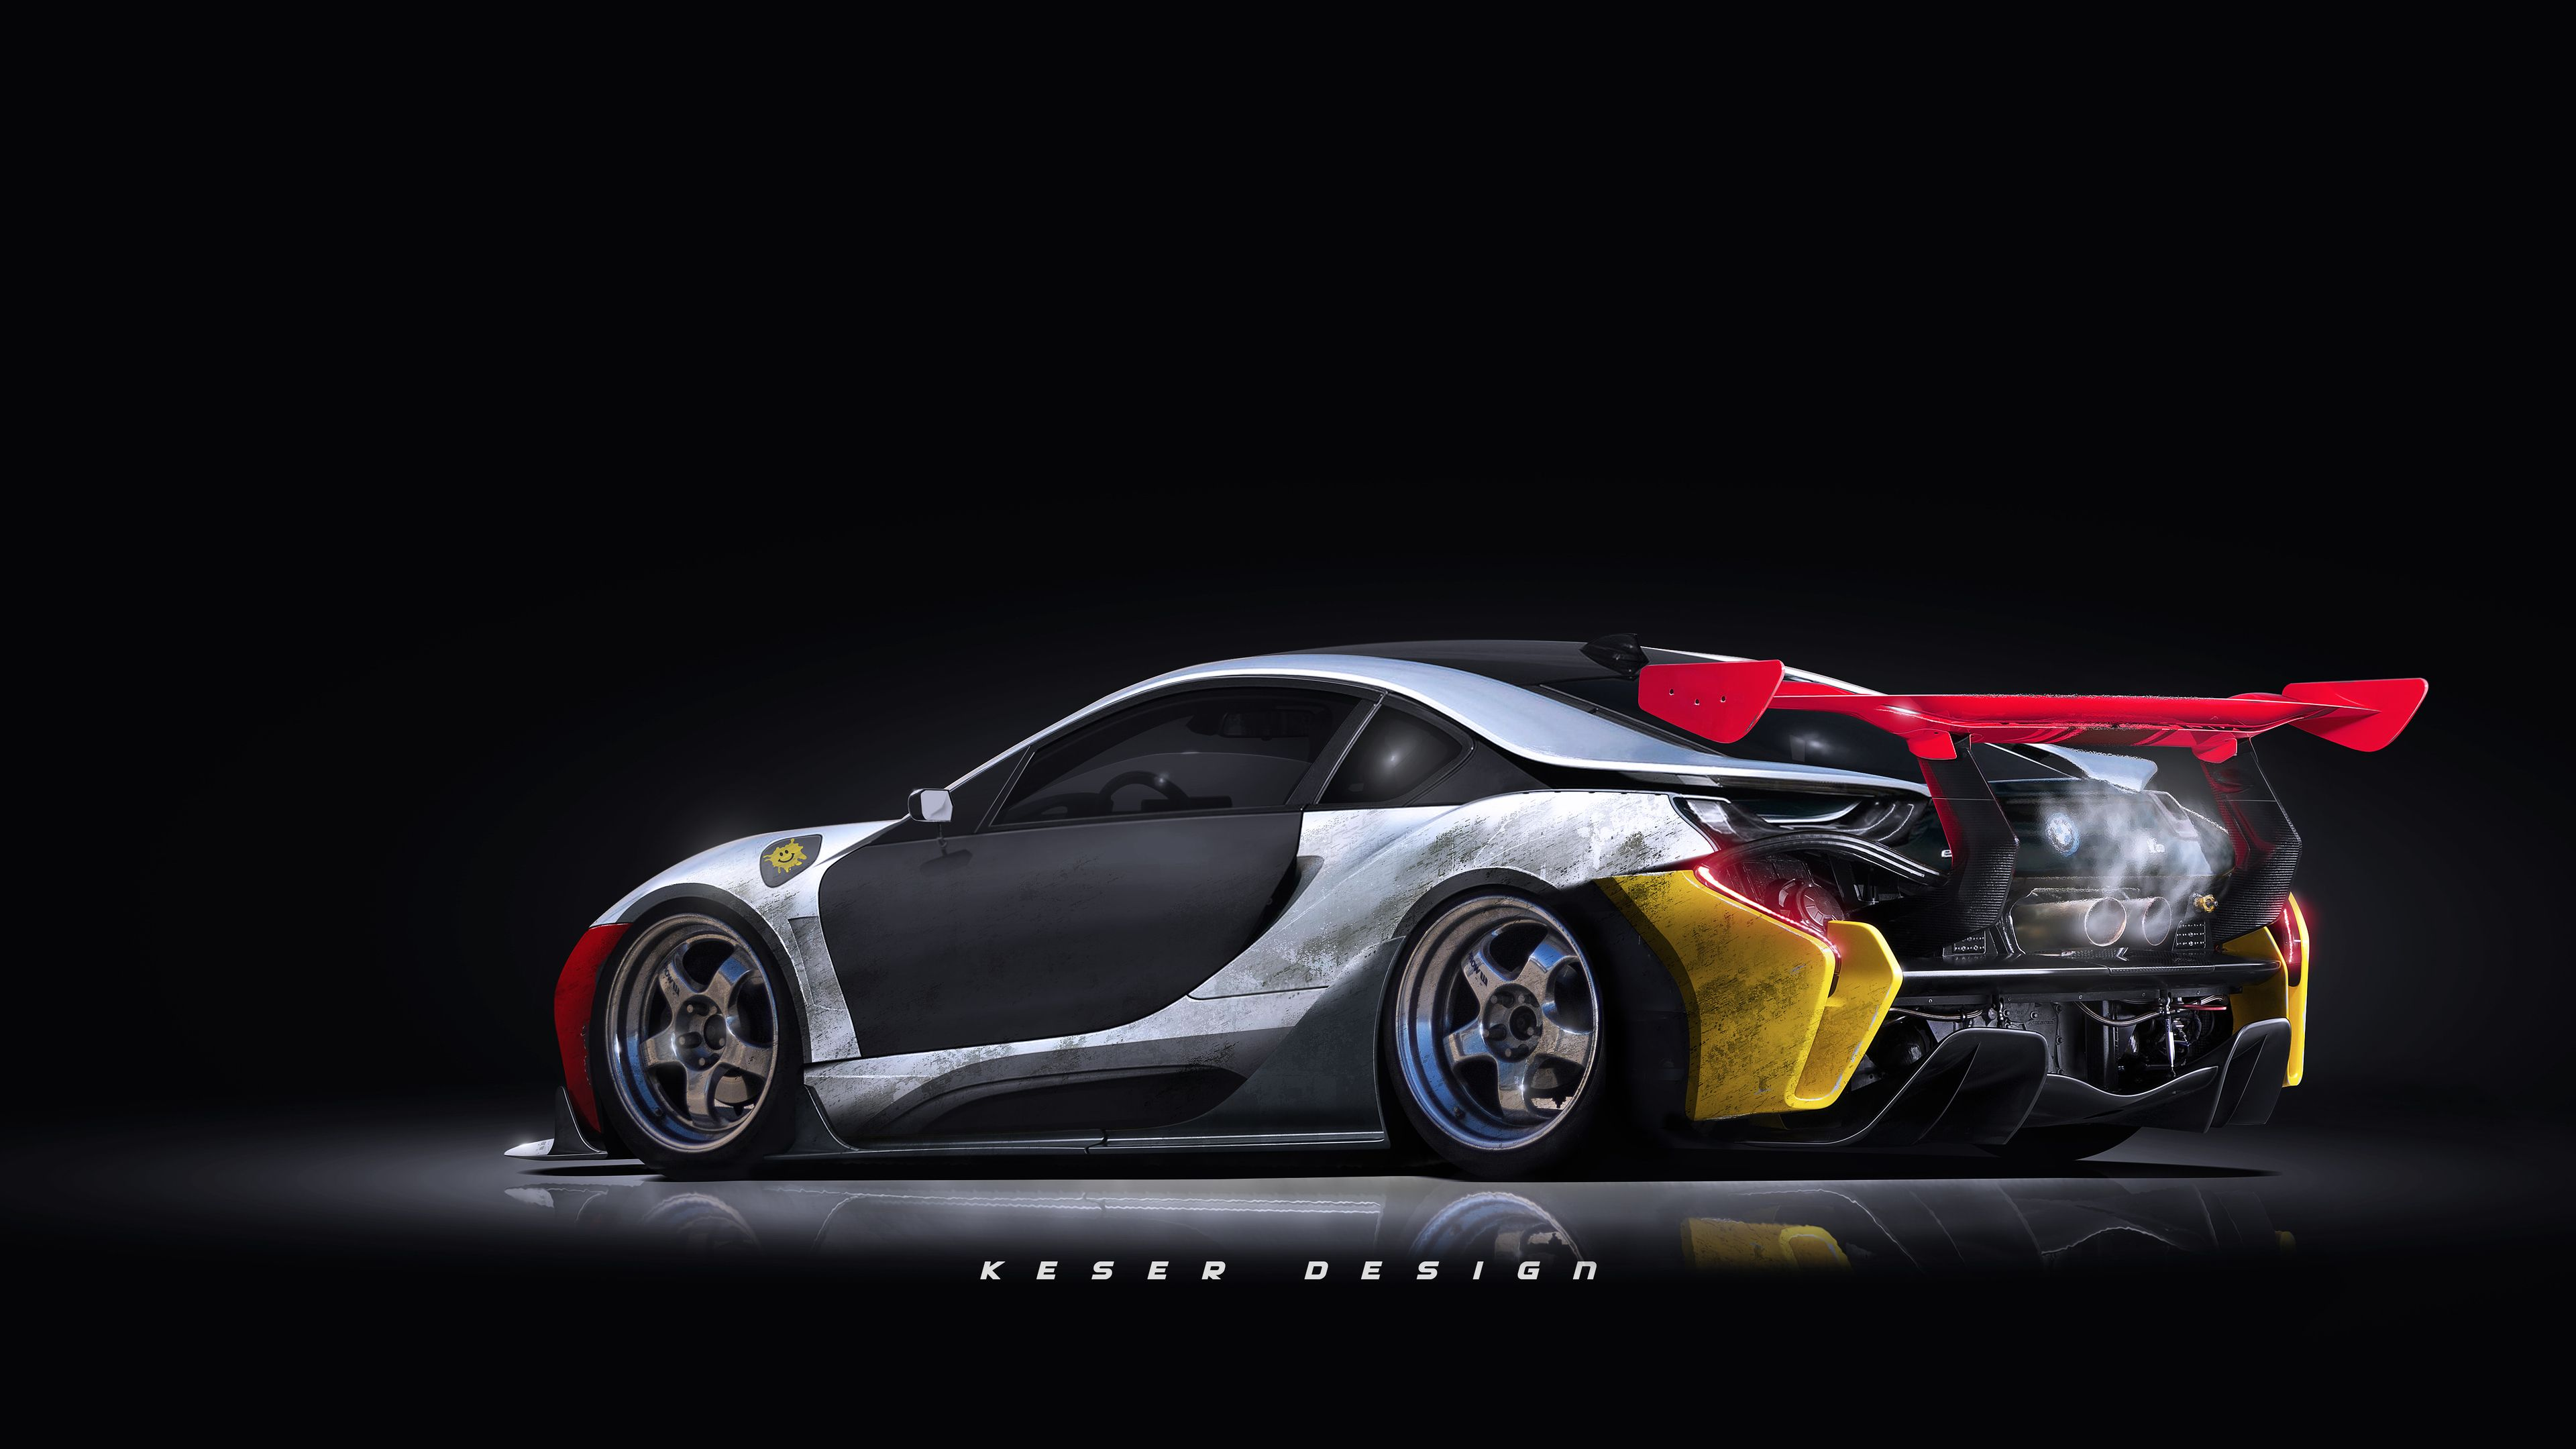 Bmw I8 Digital Art Tuned Hd Wallpapers Deviantart Wallpapers Cars